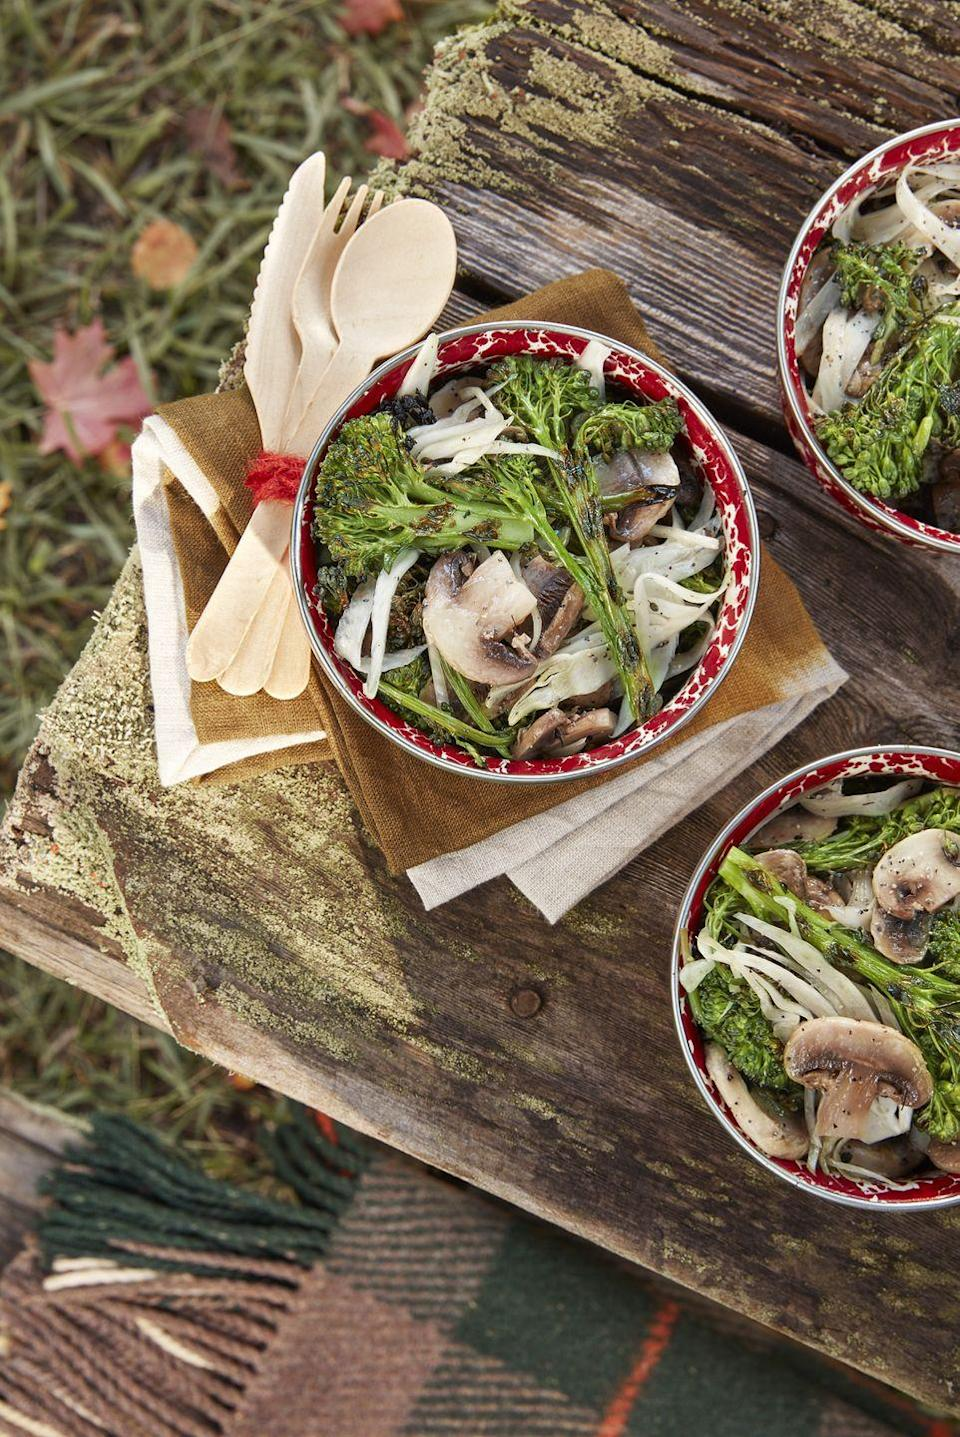 """<p>This nutritious <a href=""""https://www.countryliving.com/food-drinks/g896/thanksgiving-side-dishes/"""" rel=""""nofollow noopener"""" target=""""_blank"""" data-ylk=""""slk:Thanksgiving side dish"""" class=""""link rapid-noclick-resp"""">Thanksgiving side dish</a> packs plenty of zest—sans any animal products. </p><p><strong><a href=""""https://www.countryliving.com/food-drinks/a24415005/marinated-mushroom-charred-broccolini-salad-recipe/"""" rel=""""nofollow noopener"""" target=""""_blank"""" data-ylk=""""slk:Get the recipe"""" class=""""link rapid-noclick-resp"""">Get the recipe</a>.</strong> </p>"""